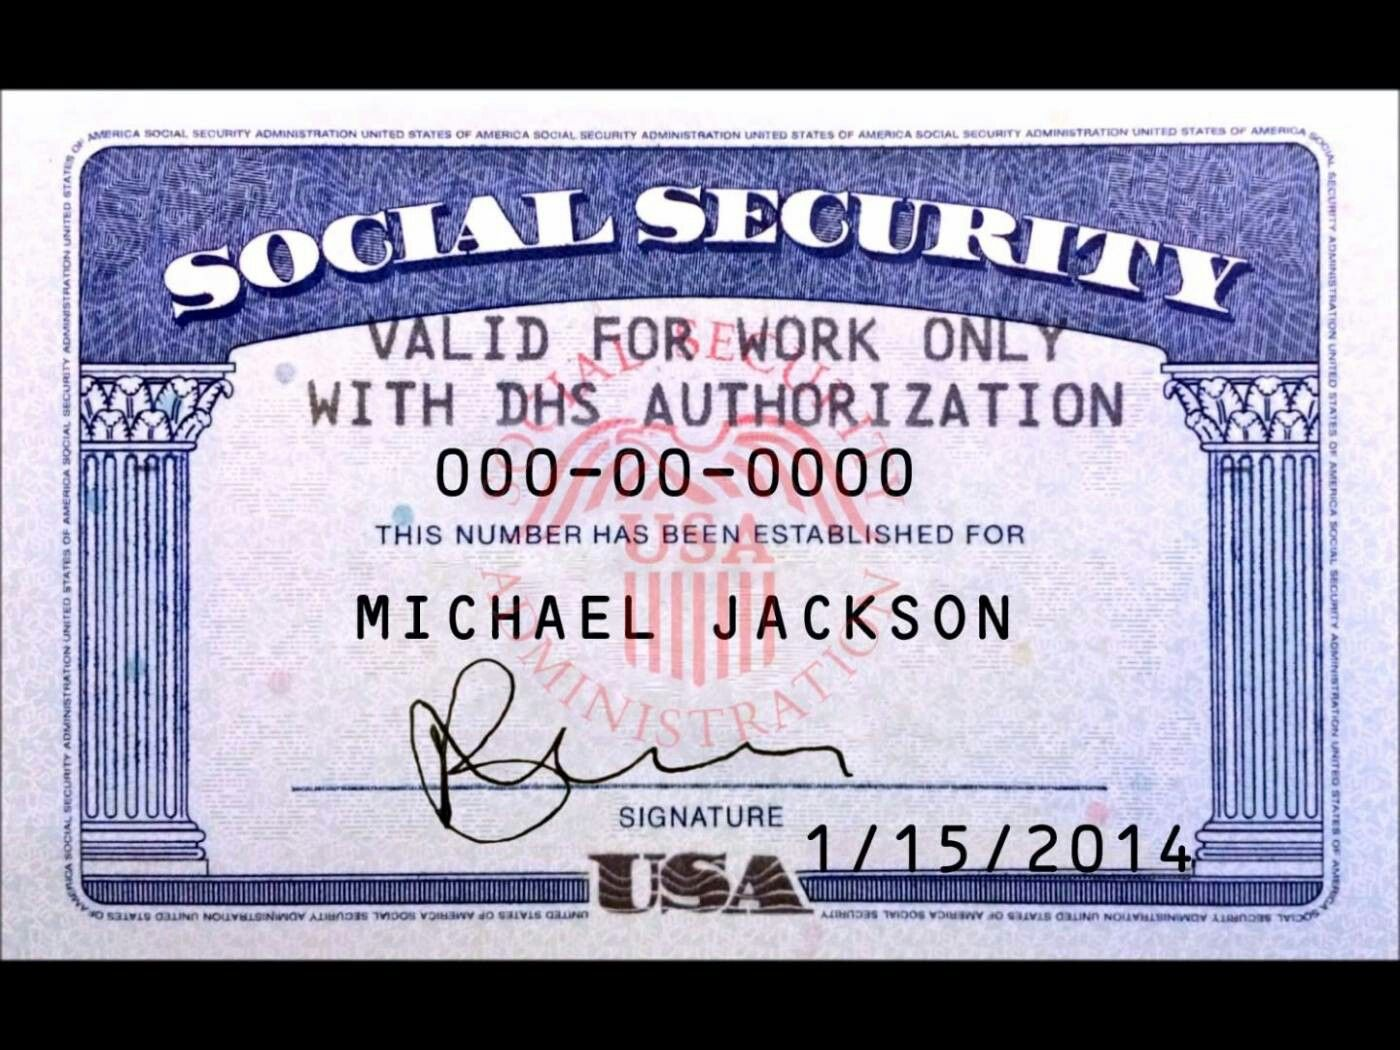 96ad7e6ceb256376f96593eedaa1b879 - How To Get A Social Security Number In California